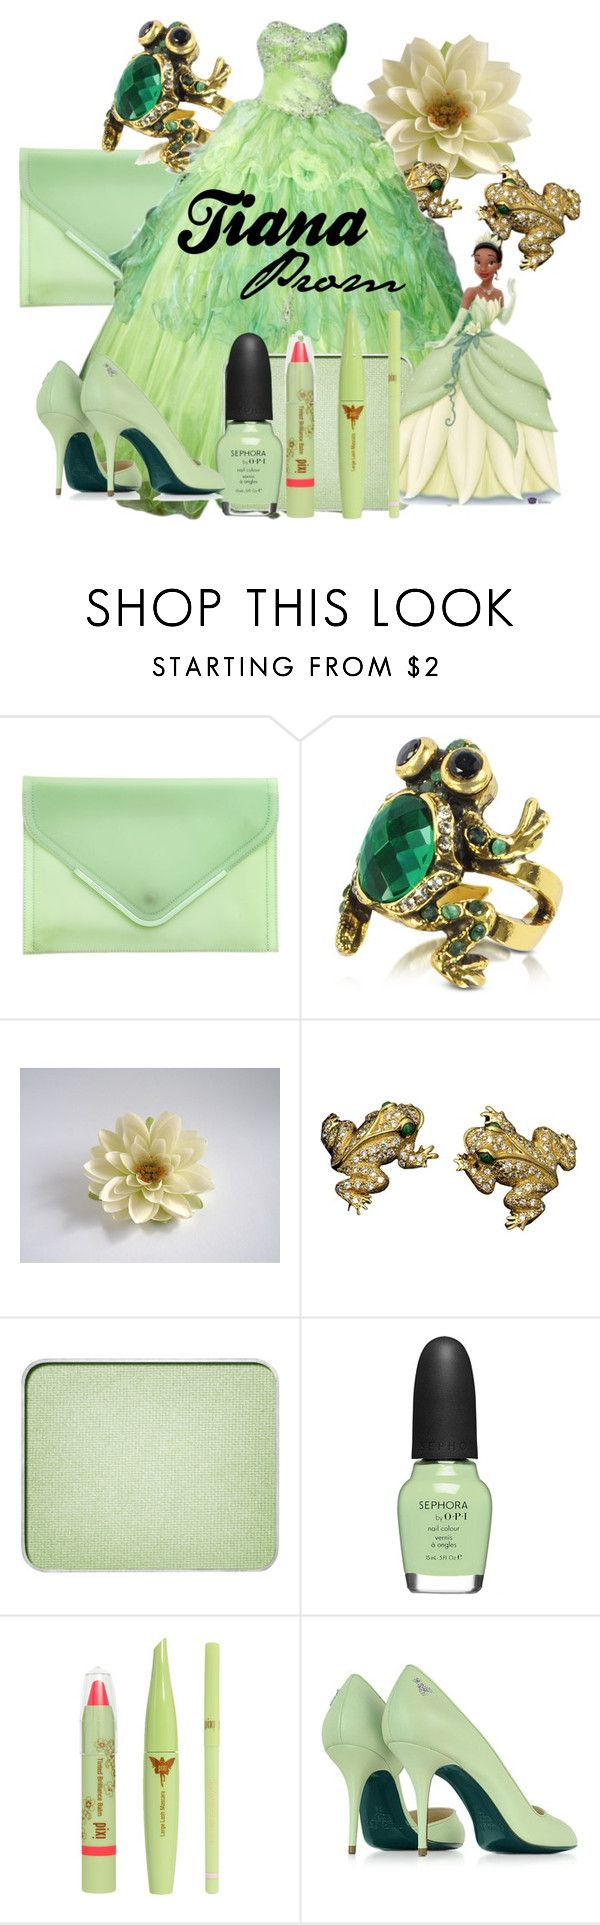 """""""Tiana Prom"""" by amarie104 ❤ liked on Polyvore featuring BCBGeneration, Alcozer & J, Buccellati, shu uemura, Sephora Collection, Pixi and Patrizia Pepe"""